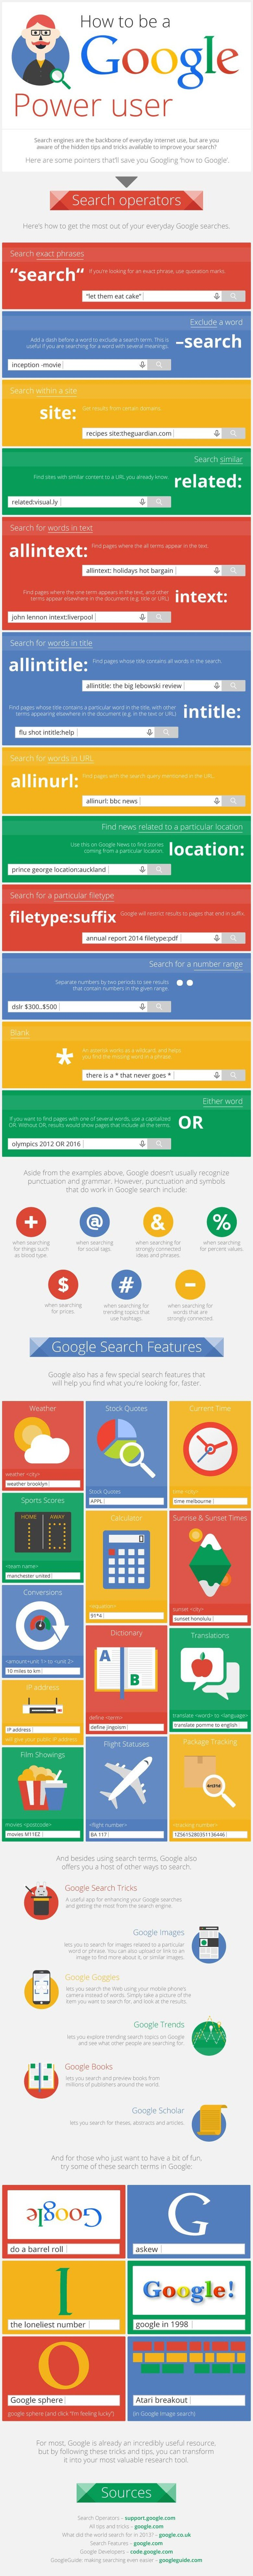 Google Search Hacks To Make Your Life Easier Infographic The Muse